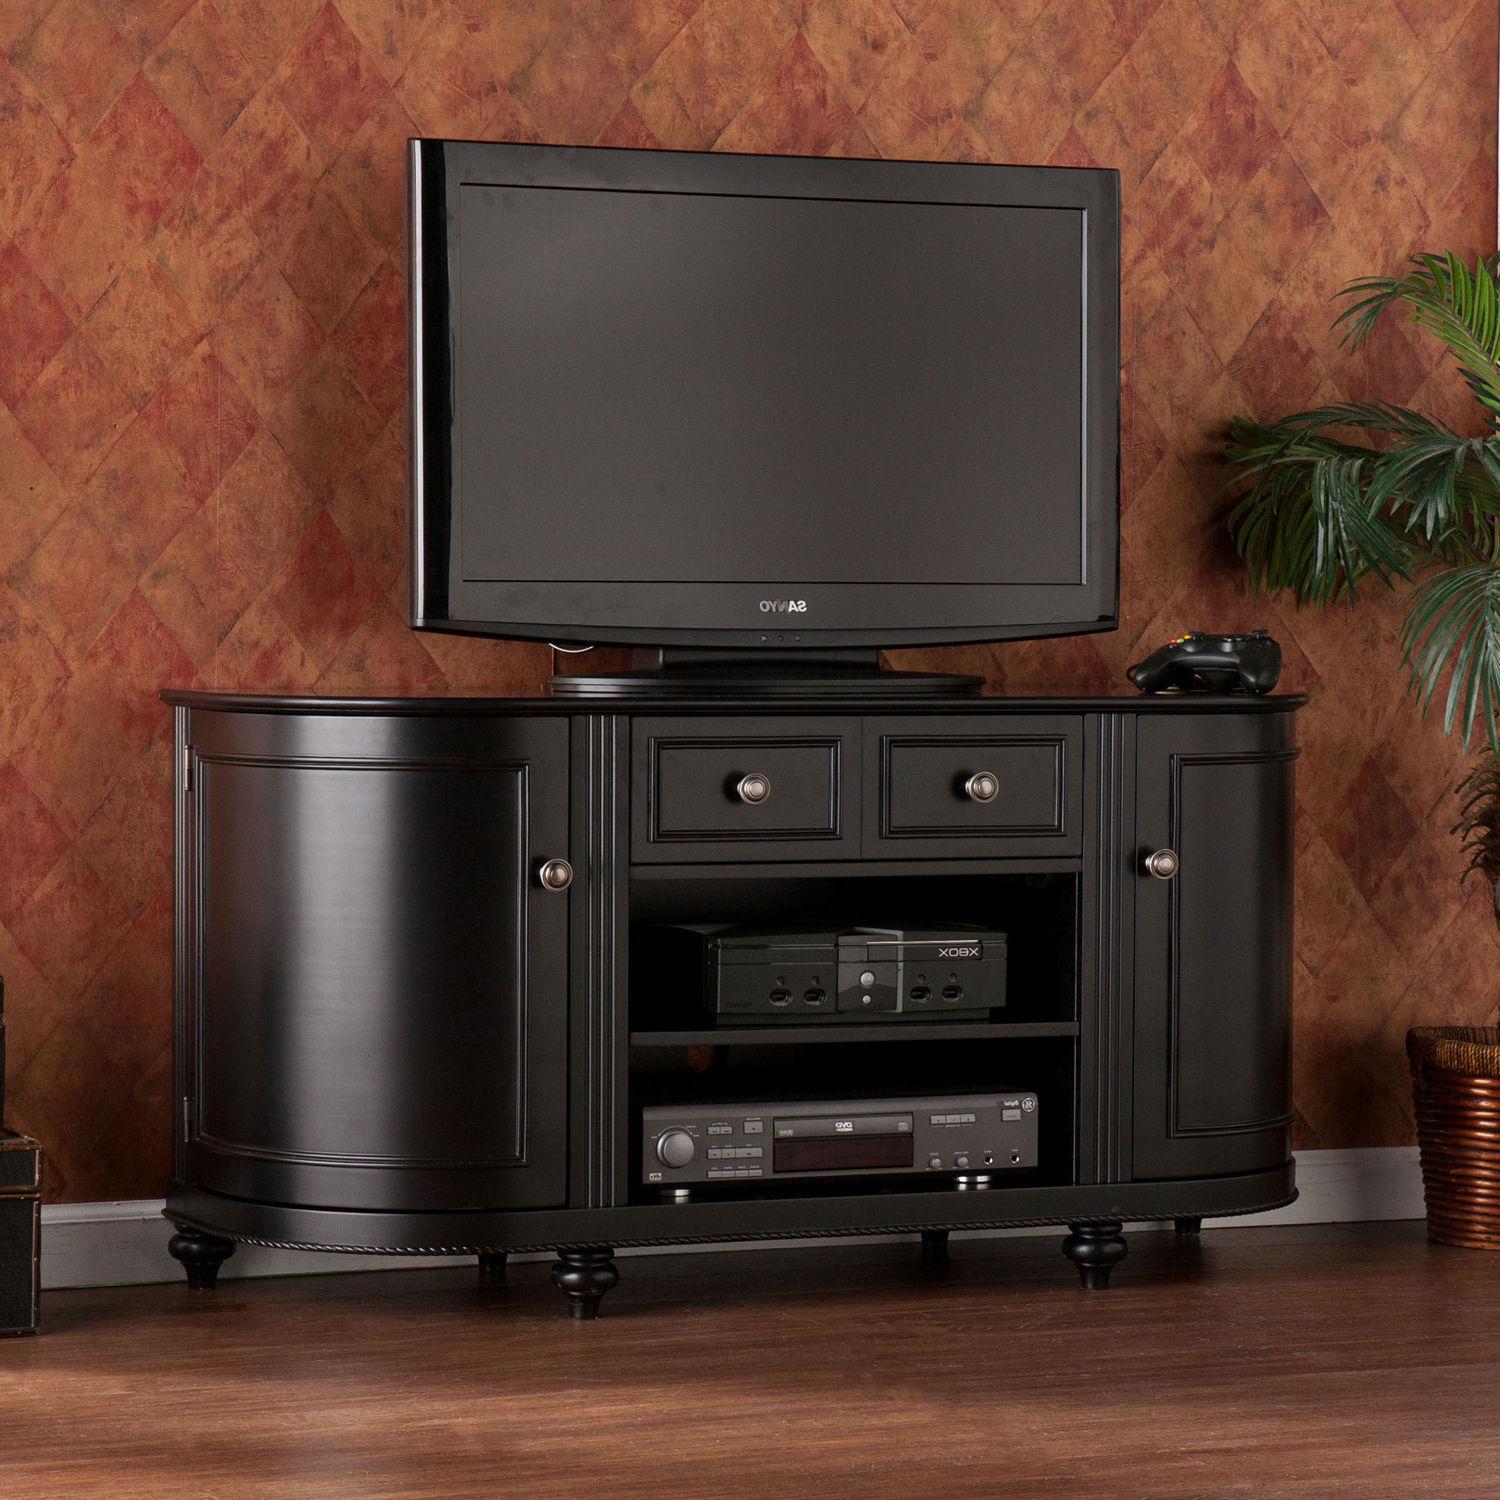 Southern Enterprises Dandridge Black Tv Stand Ms8341 | Bellacor For Rowan 45 Inch Tv Stands (View 4 of 20)